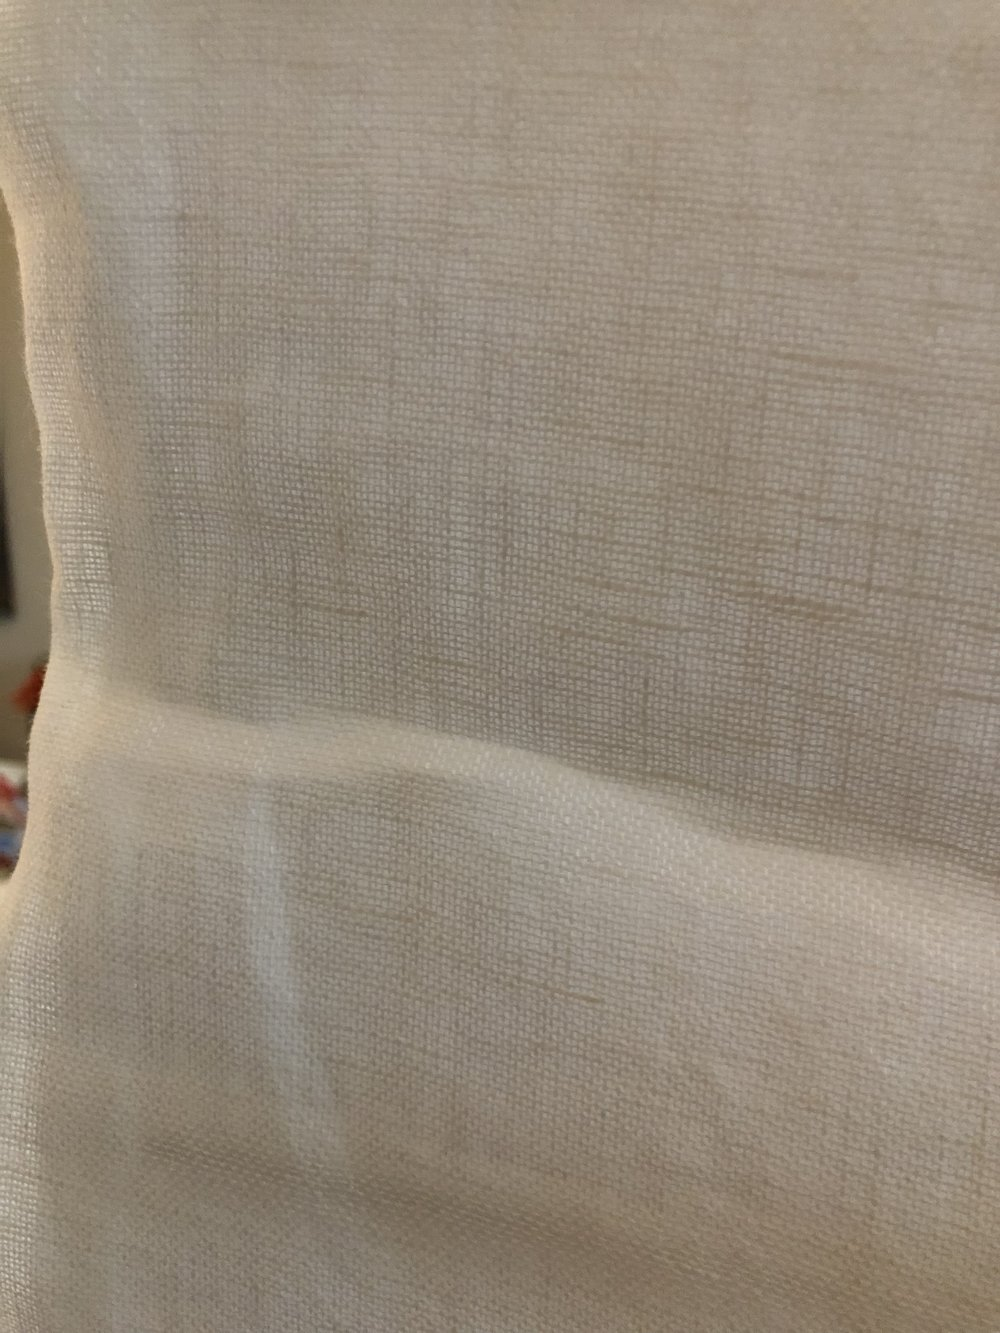 Linen! Ugh! It doesn't look pretty for Roman shades !